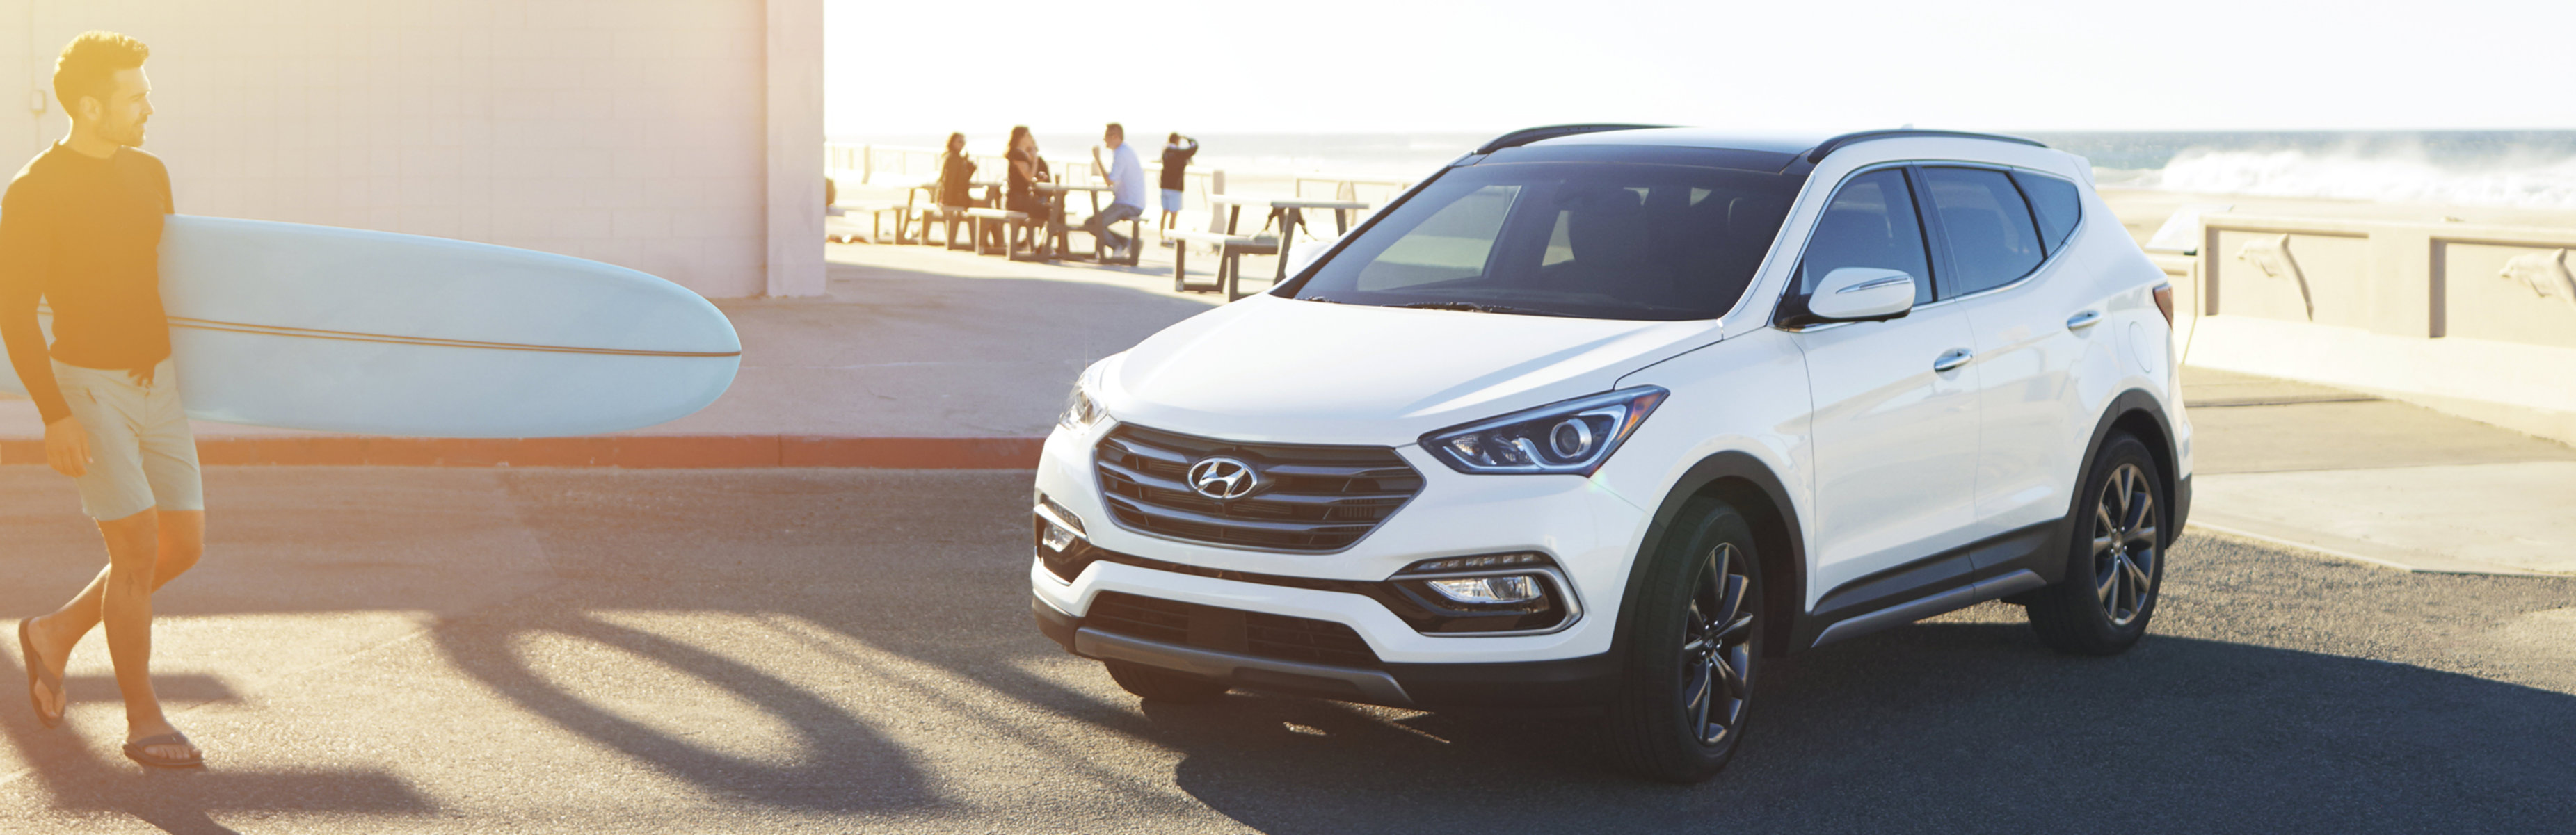 5 Great Hyundai Parts To Get The Most Out Of Your Summer